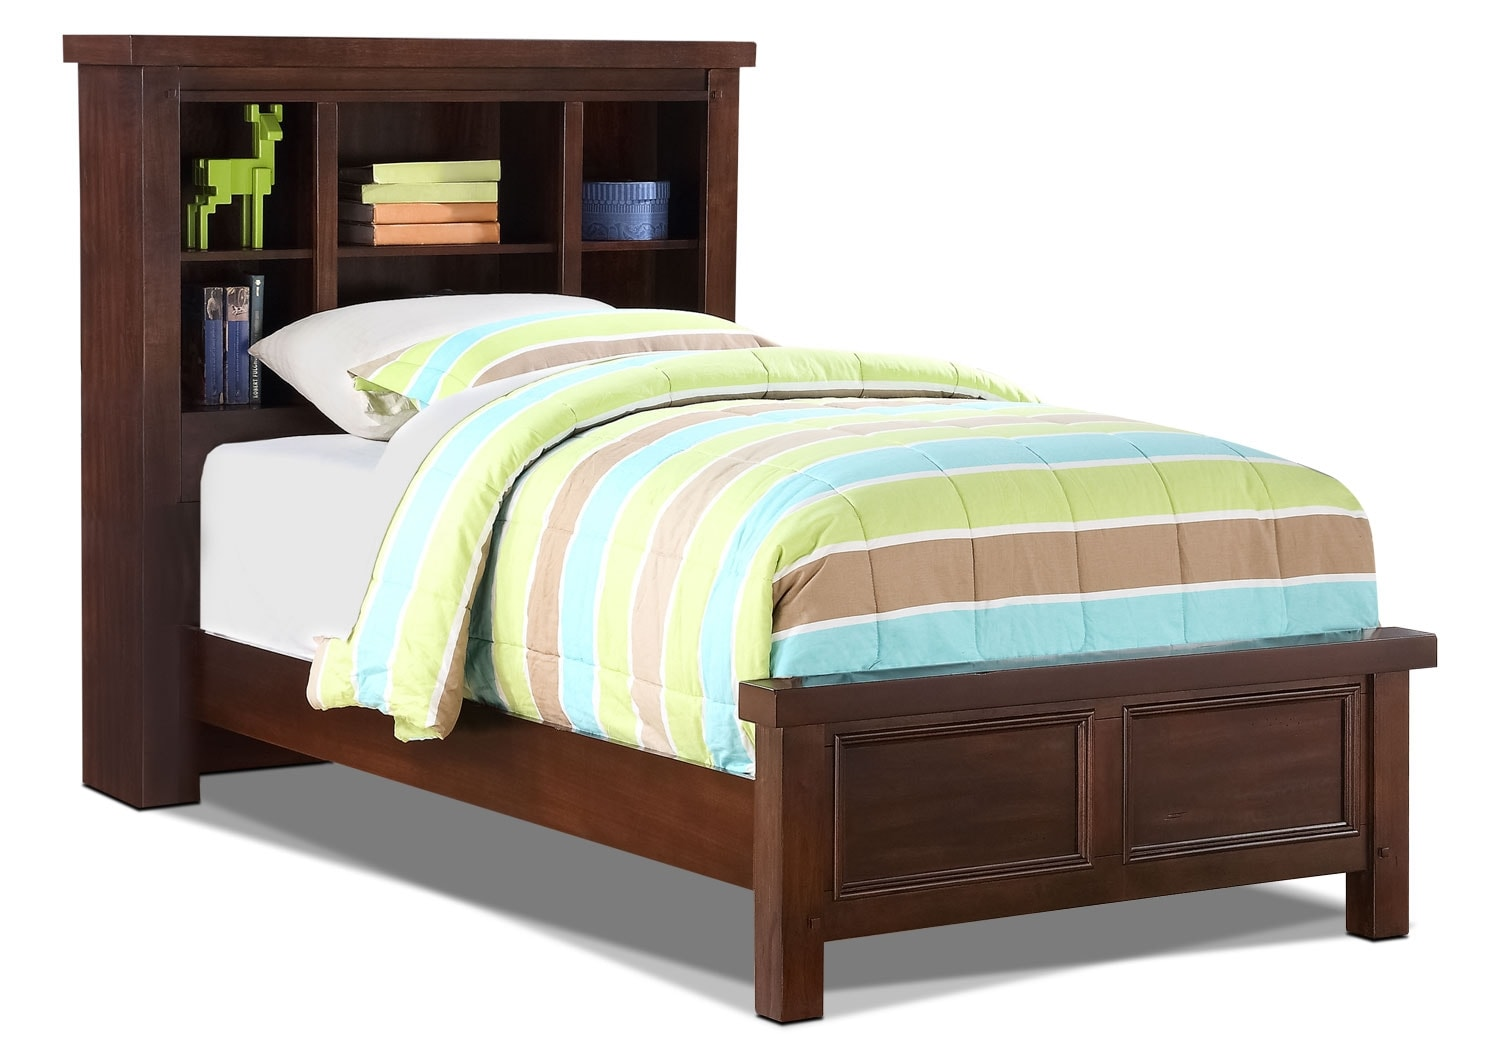 Sonoma Youth Twin Bookcase Bed